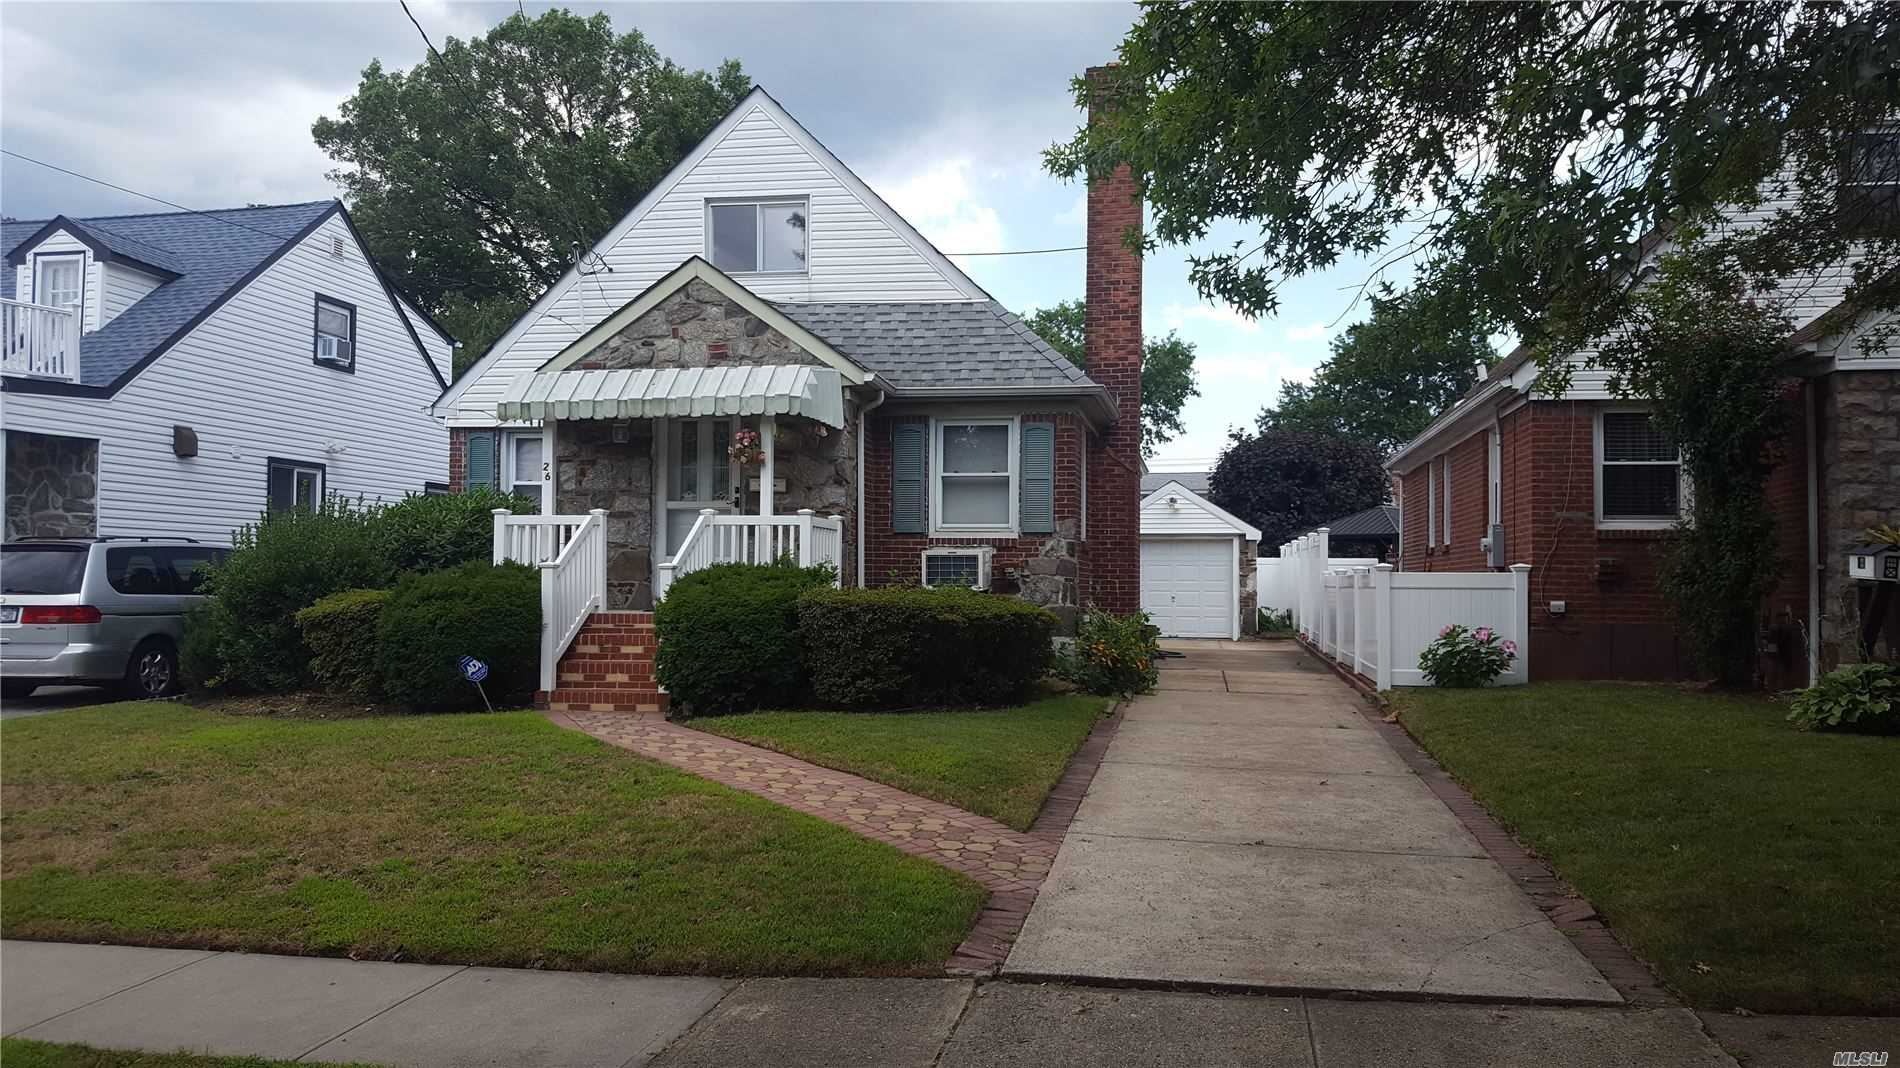 Great Home very clean, Open 1st floor layout, Lr with fireplace with granite accent wall, New windows and Roof, and cement work. close to schools and shopping Elmont schools, Full Taxes are 8360